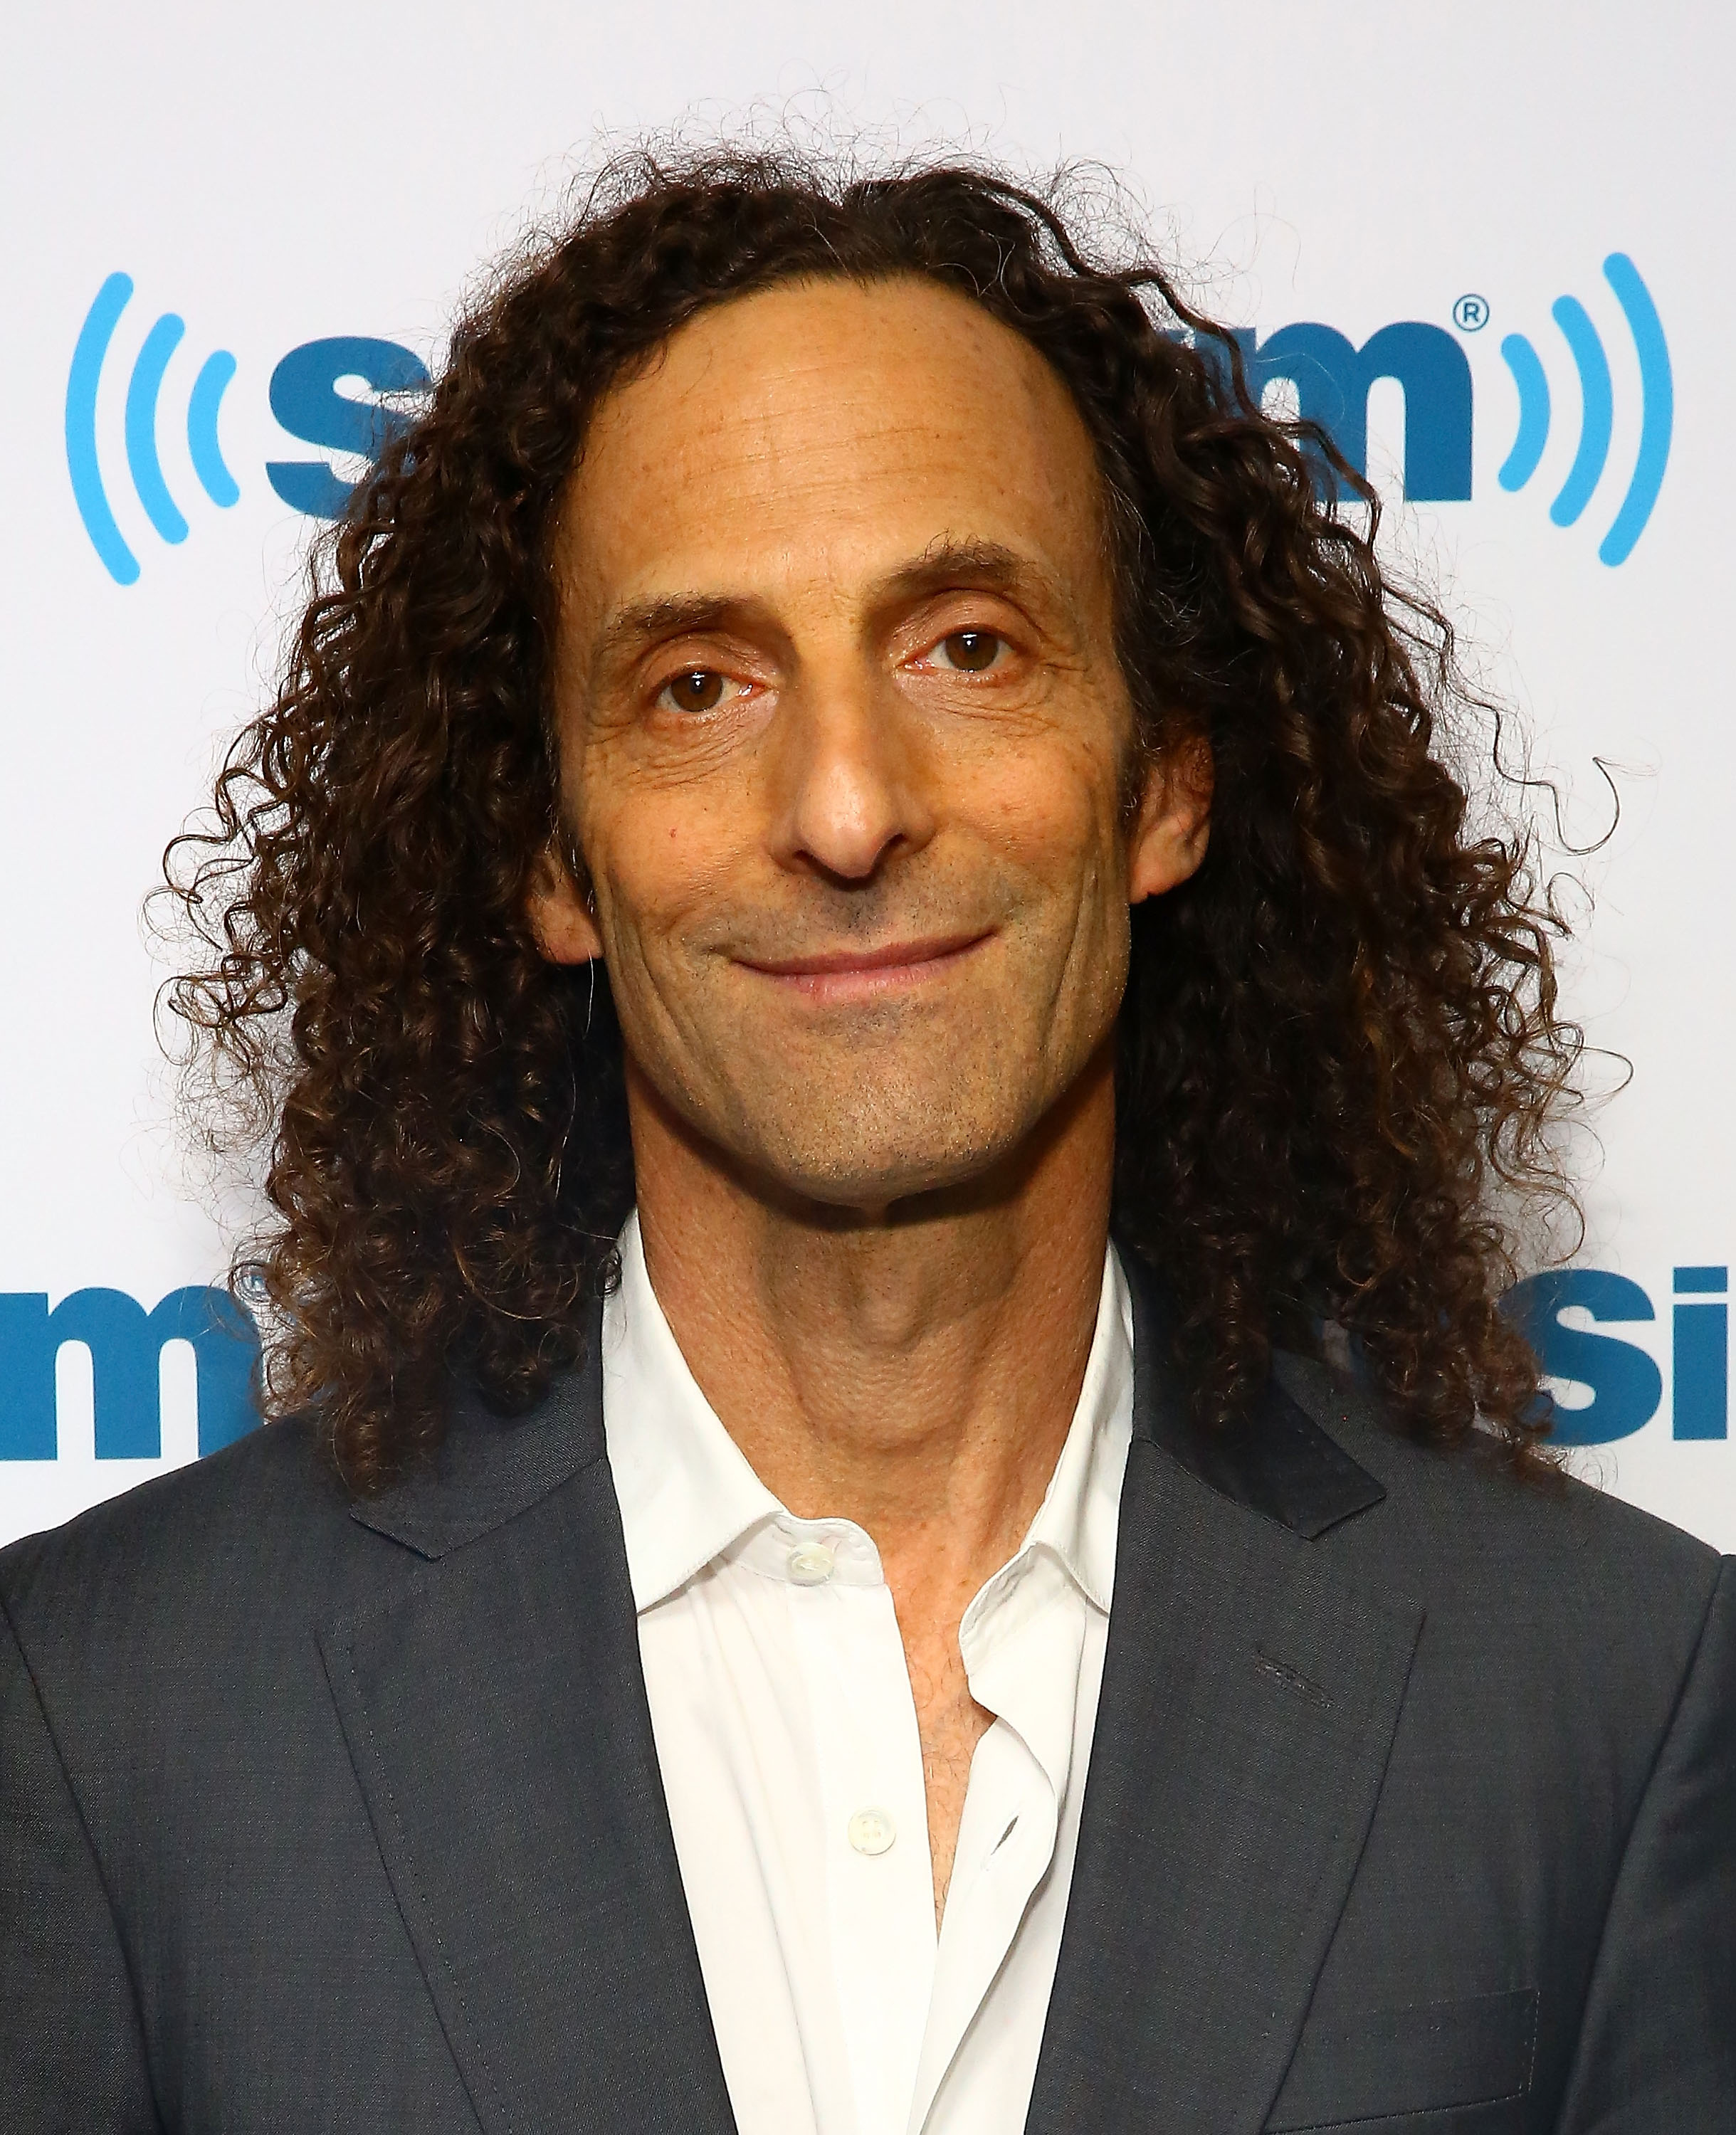 Musician Kenny G visits the SiriusXM Studios on Jan. 28, 2015 in New York City.